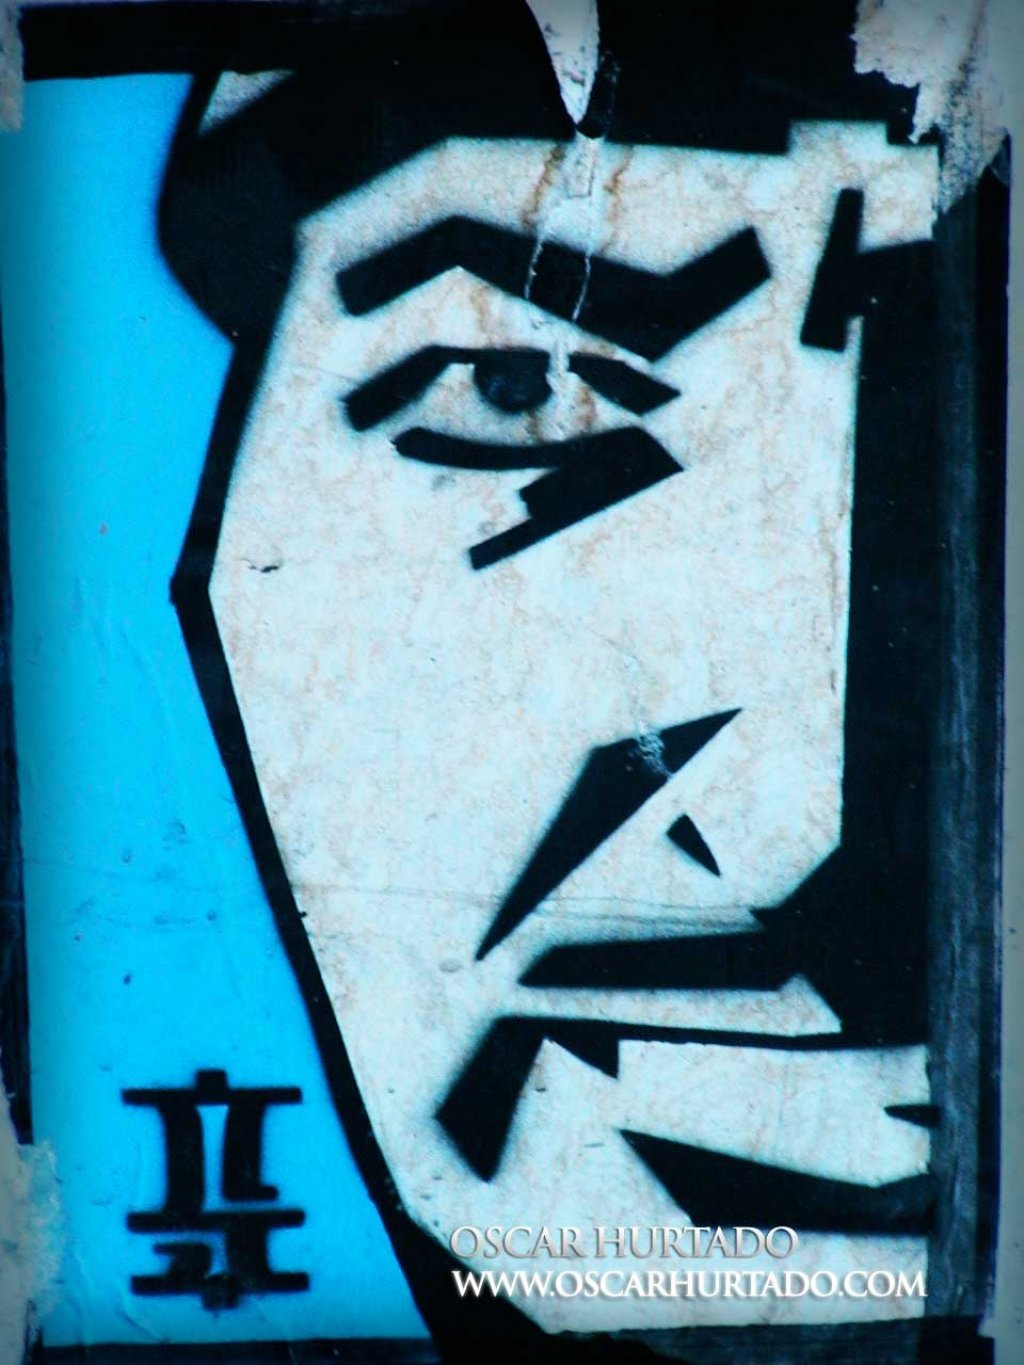 Iconic blue graffiti portraying the face of an Asian man